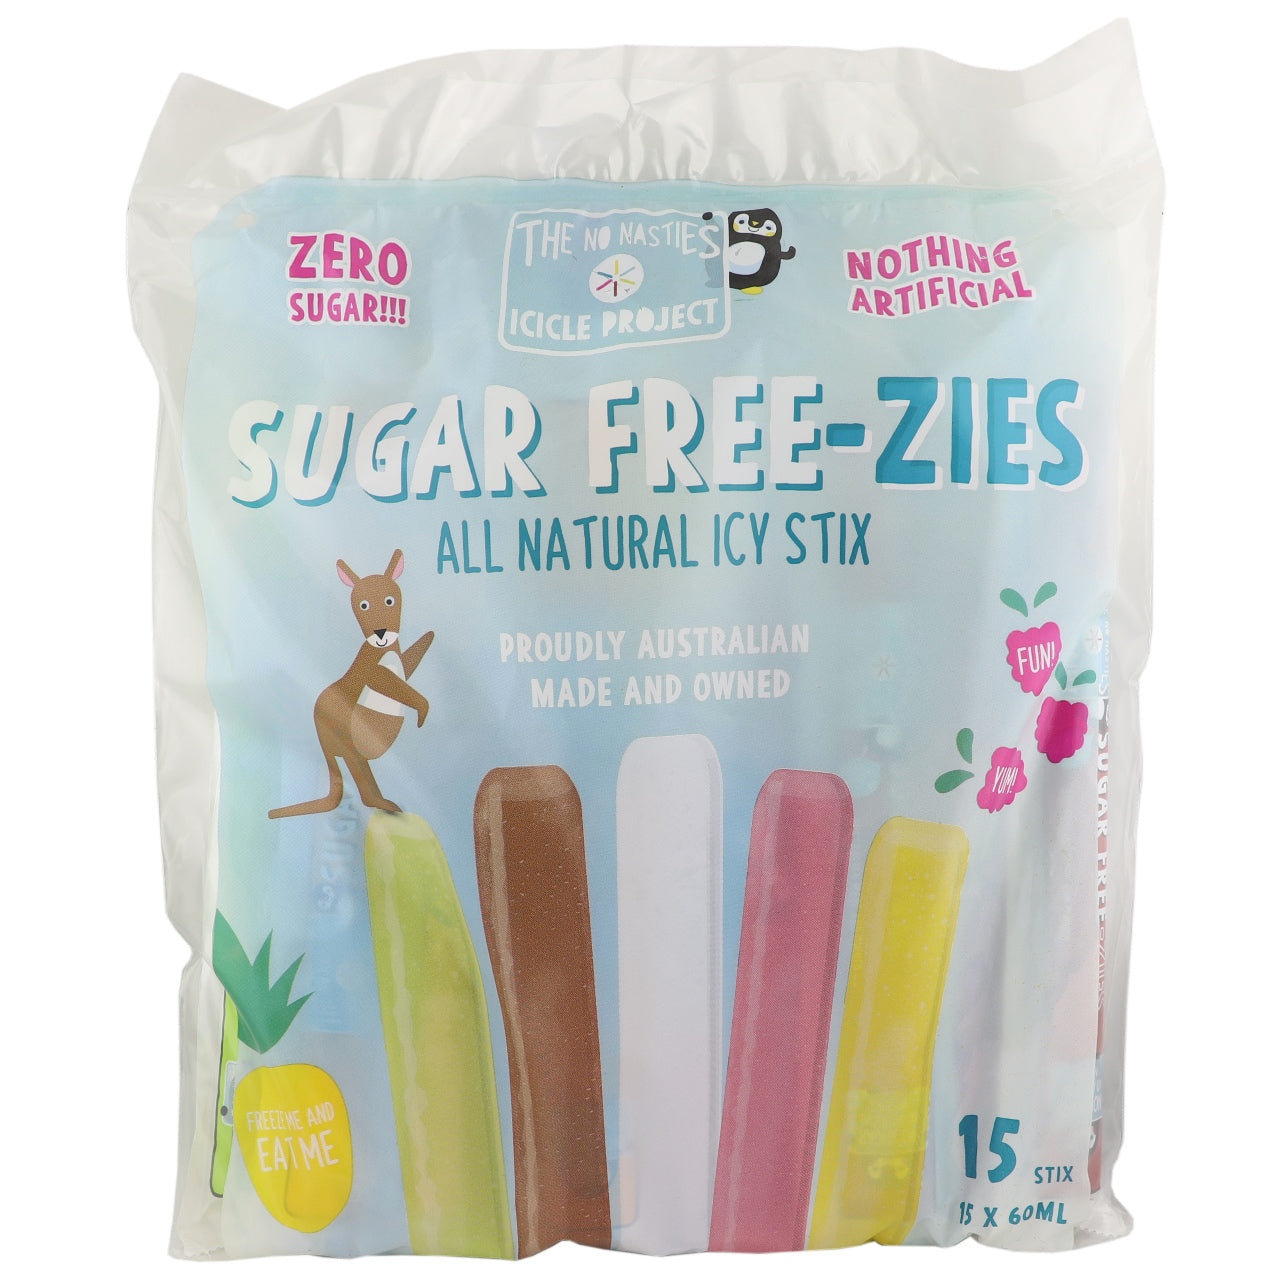 Sugar Free-zies All Natural Icy Stix